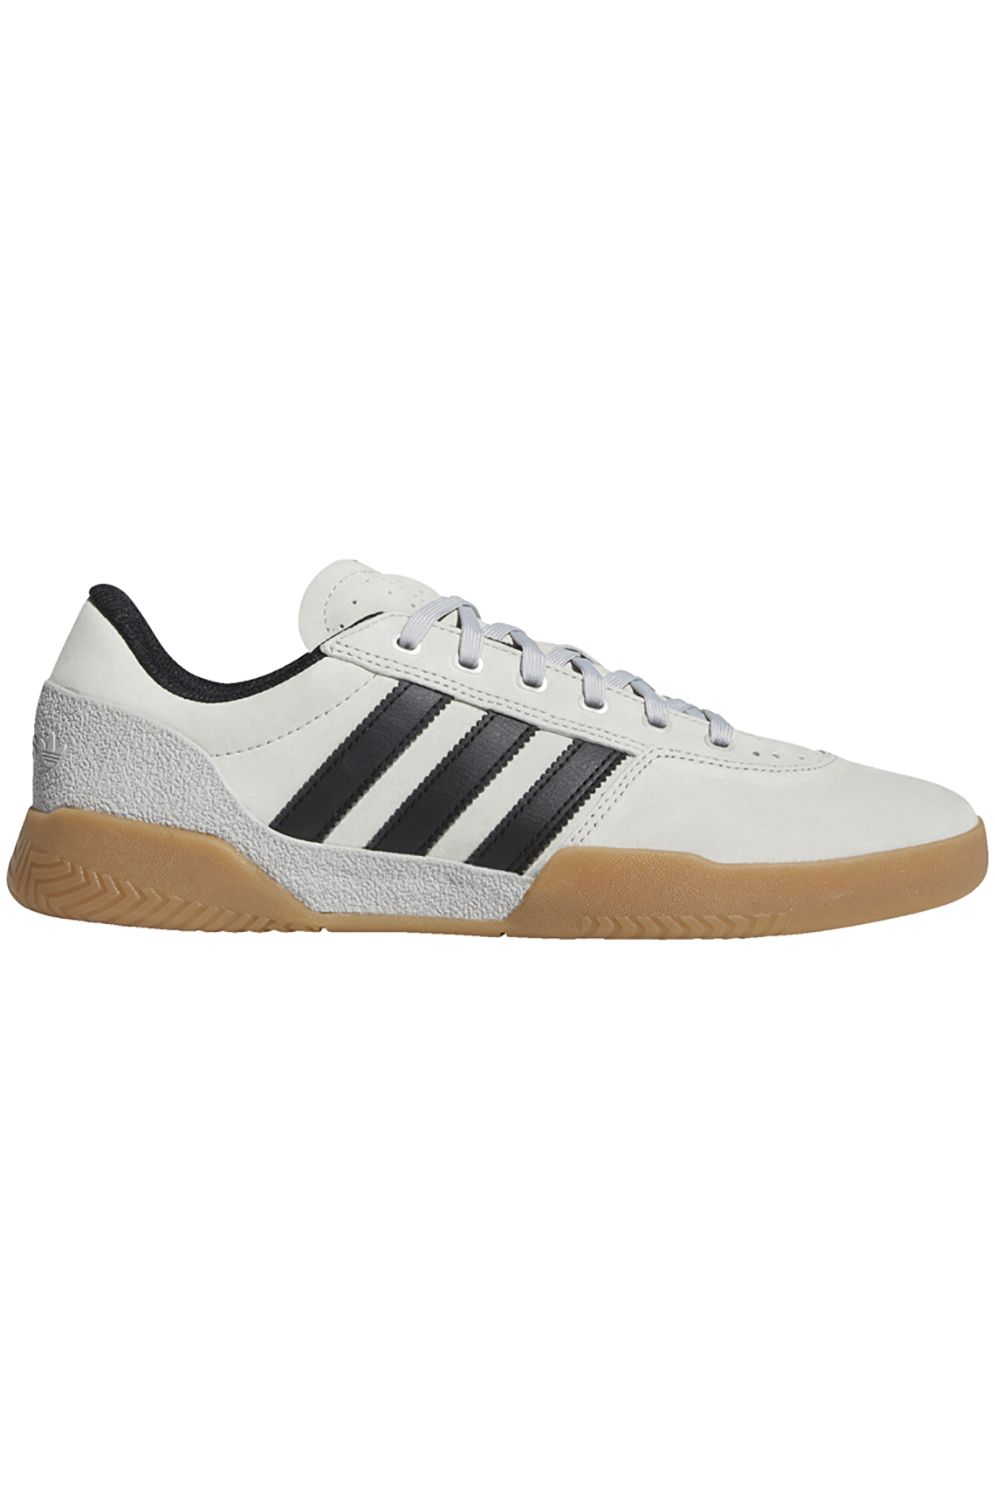 Tenis Adidas CITY CUP Grey Two F17/Core Black/Gum4